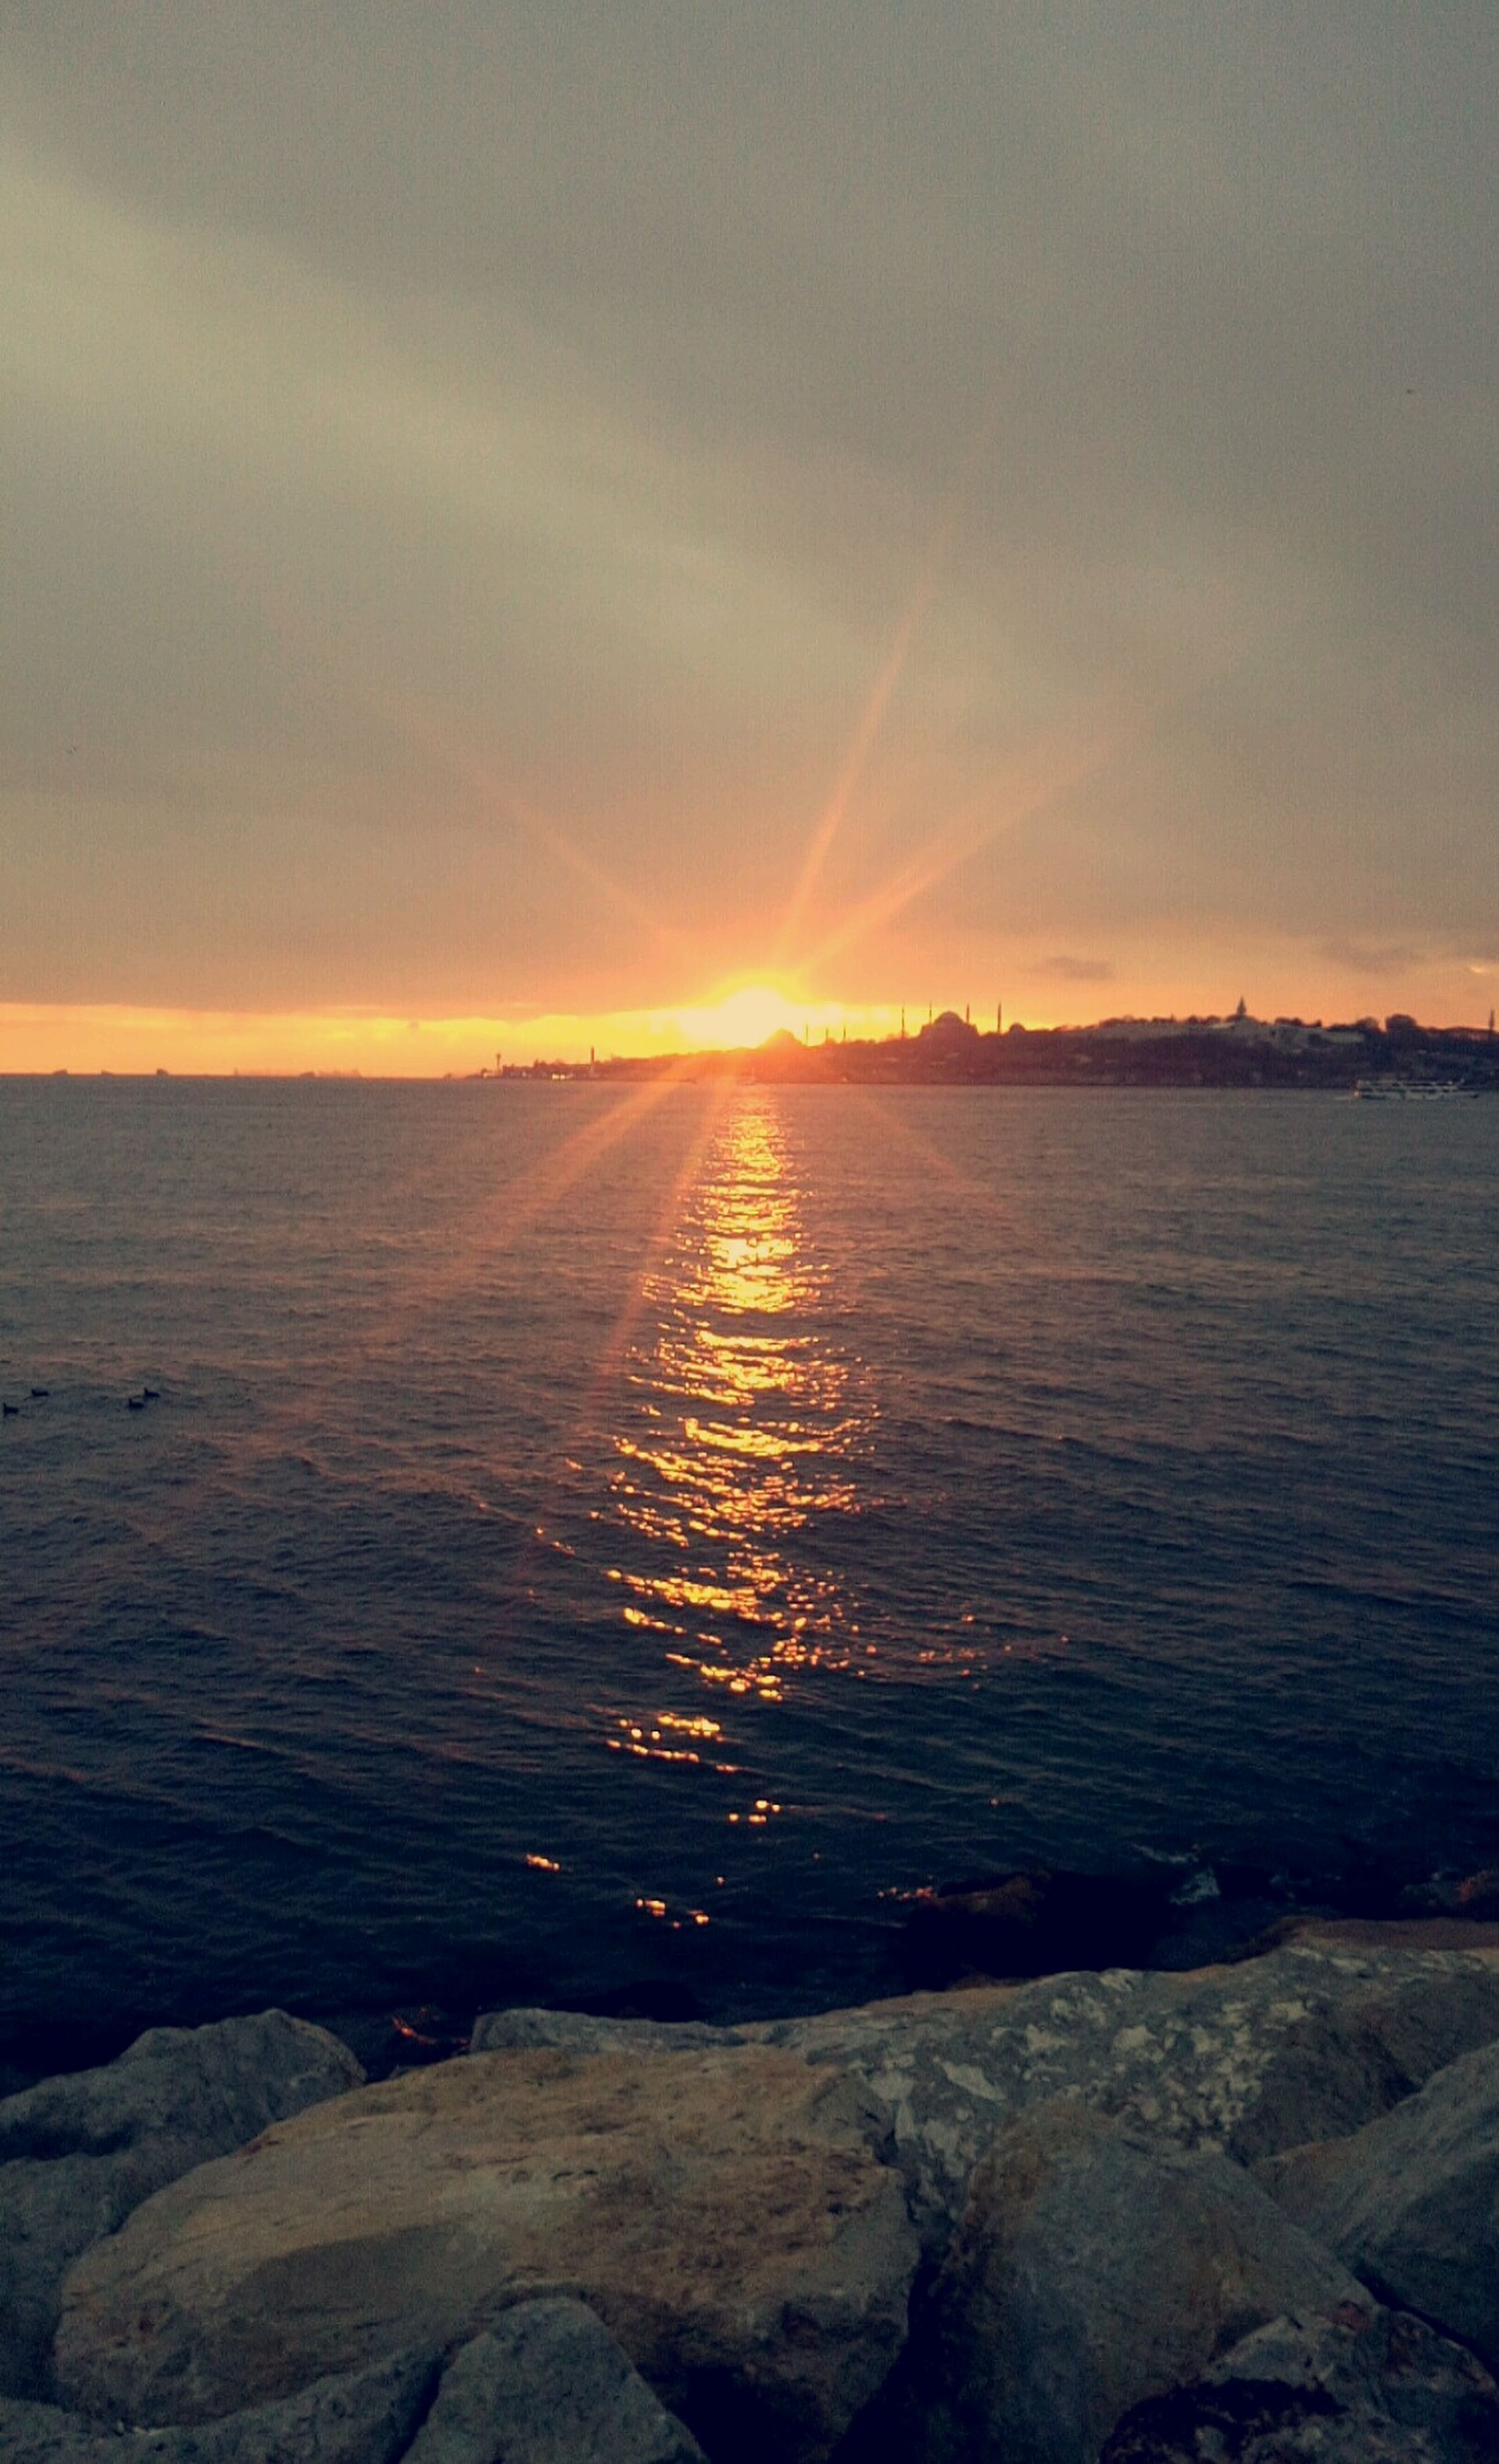 sunset, sea, beauty in nature, scenics, nature, outdoors, tranquil scene, horizon over water, no people, wave, sky, tranquility, beach, water, day